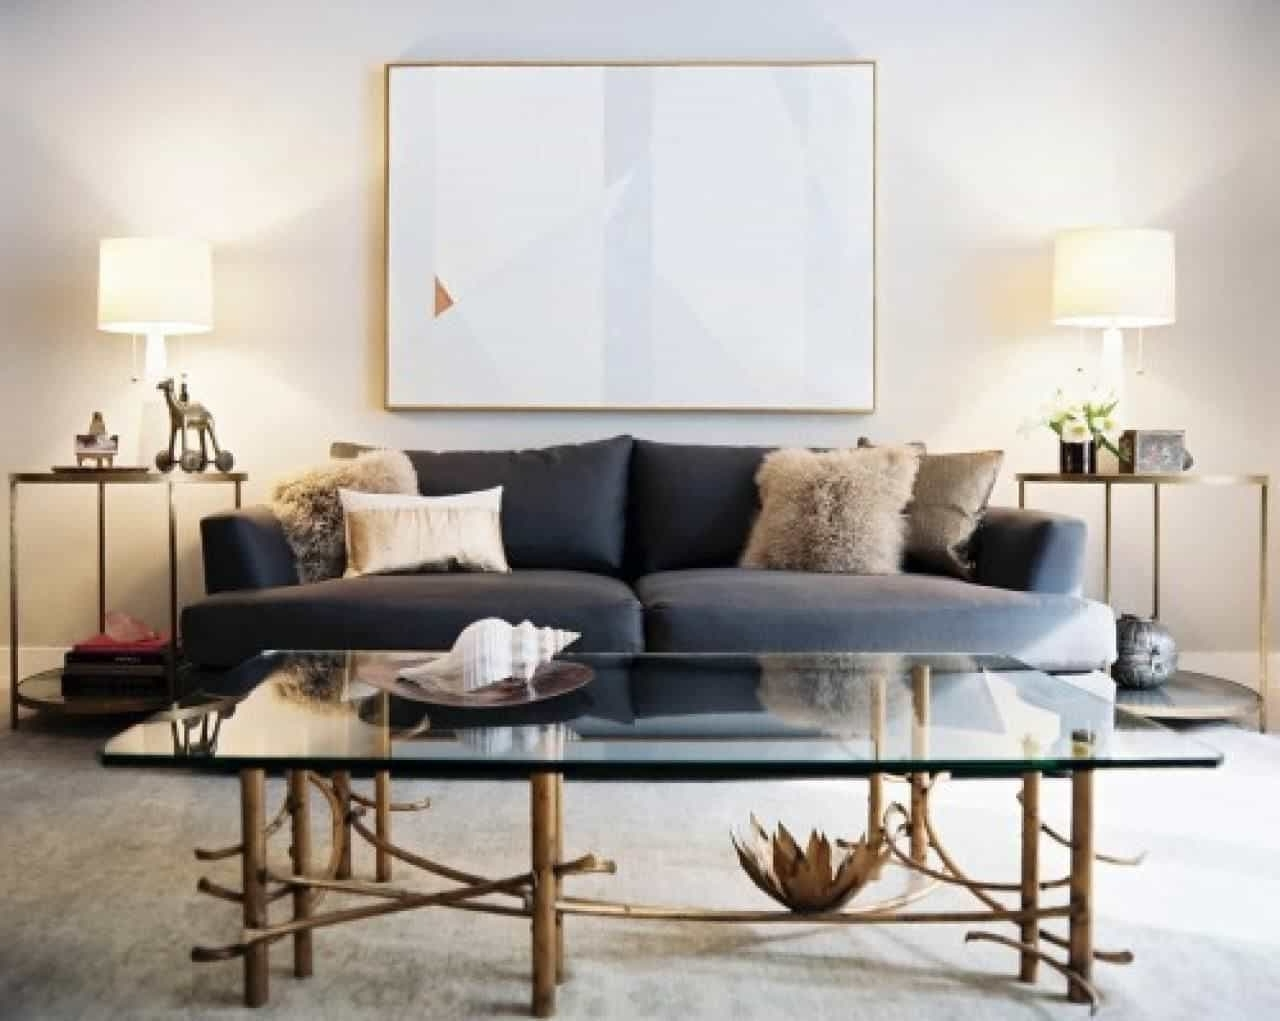 2017 Modern Living Room With Grey Sofa And Side Tables With Table Lamps With Contemporary Living Room Table Lamps (View 1 of 15)